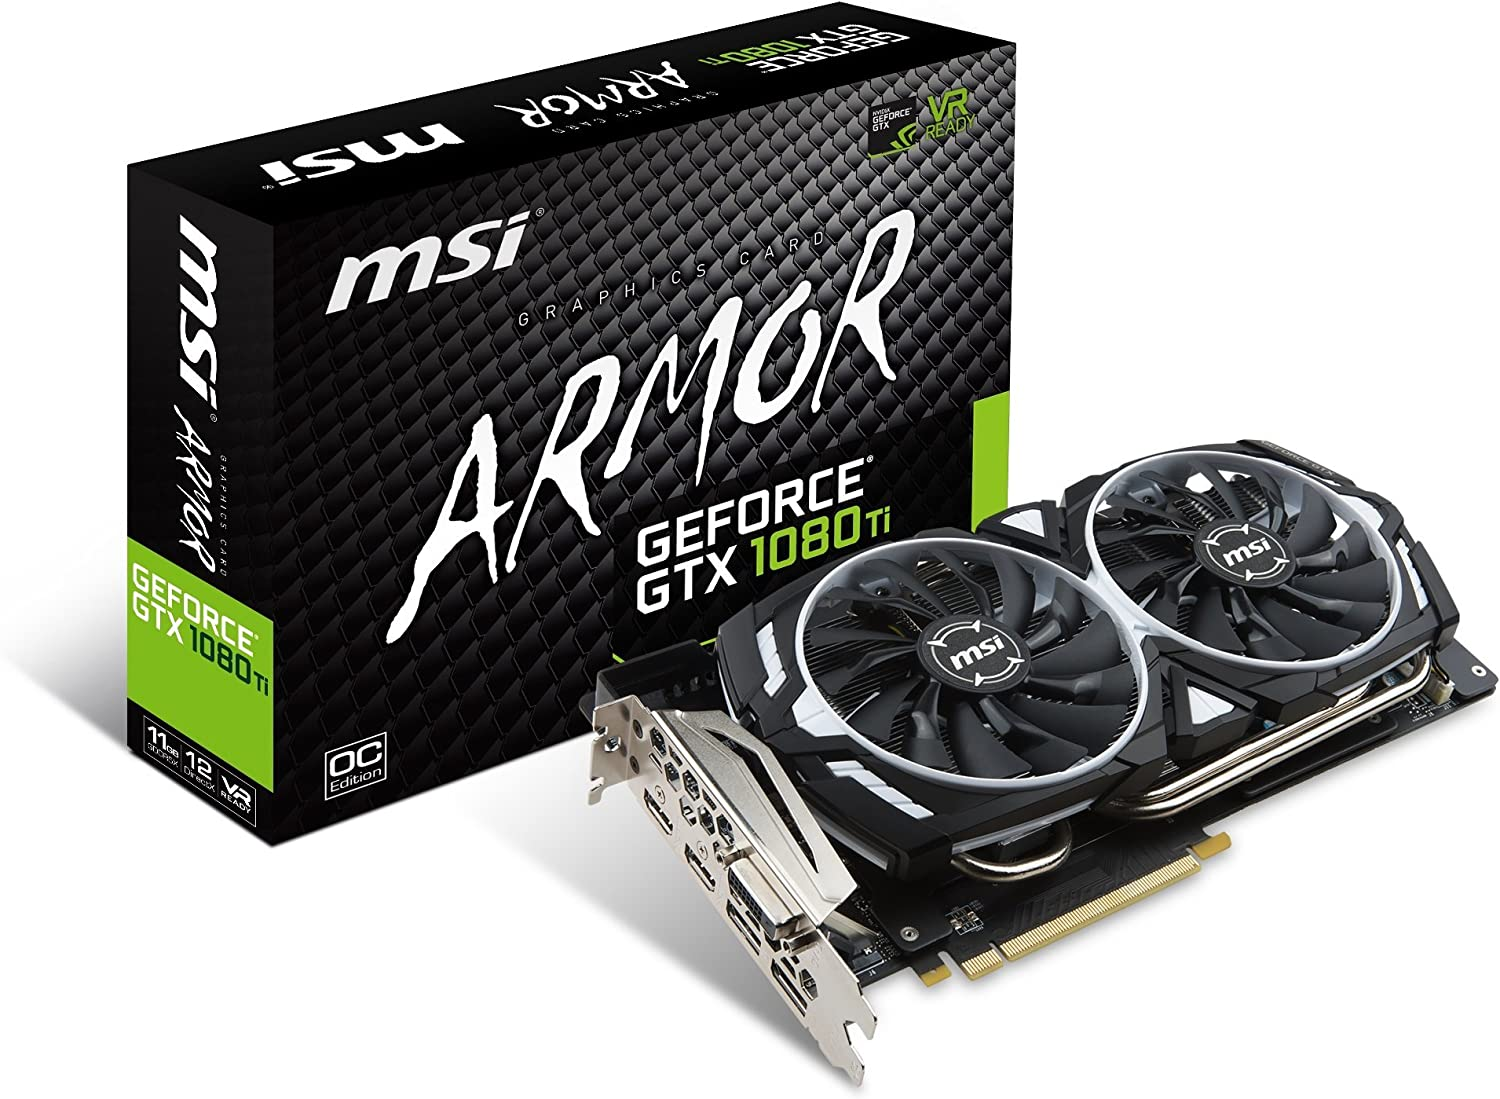 MSI GeForce GTX 1080 Ti Armor 11G OC Video Graphics Card (Renewed)